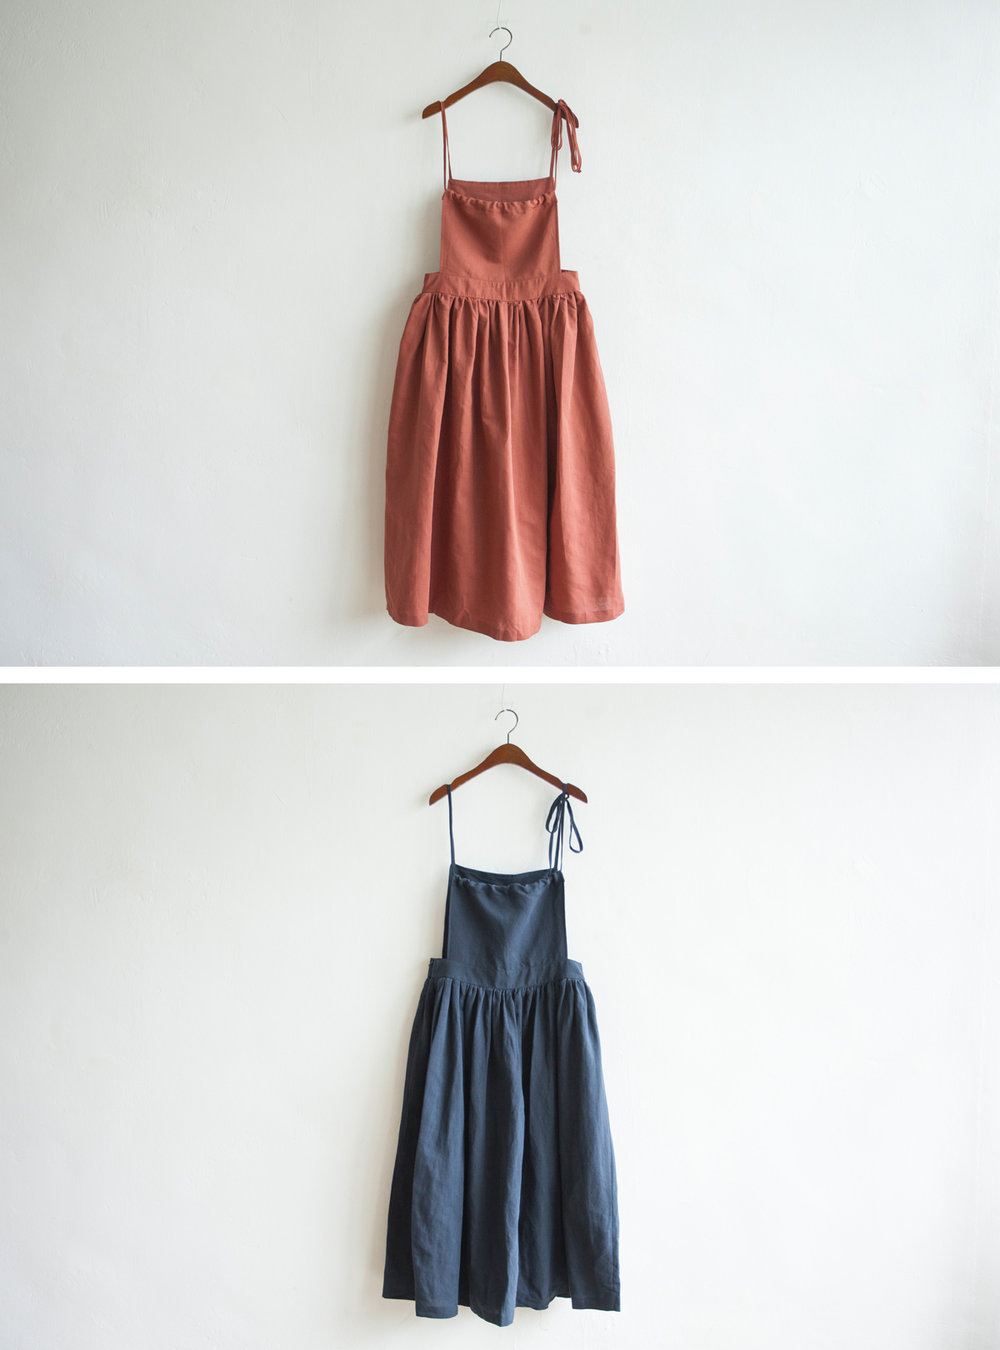 NBOA351 chaya linen apron pouf dress    early bird price: HK$398 / NT$1710    regular price: HK$468 / NT$2010 color: coral / navy    made in korea     measurement (cm) length 119 waist 81 hip 133